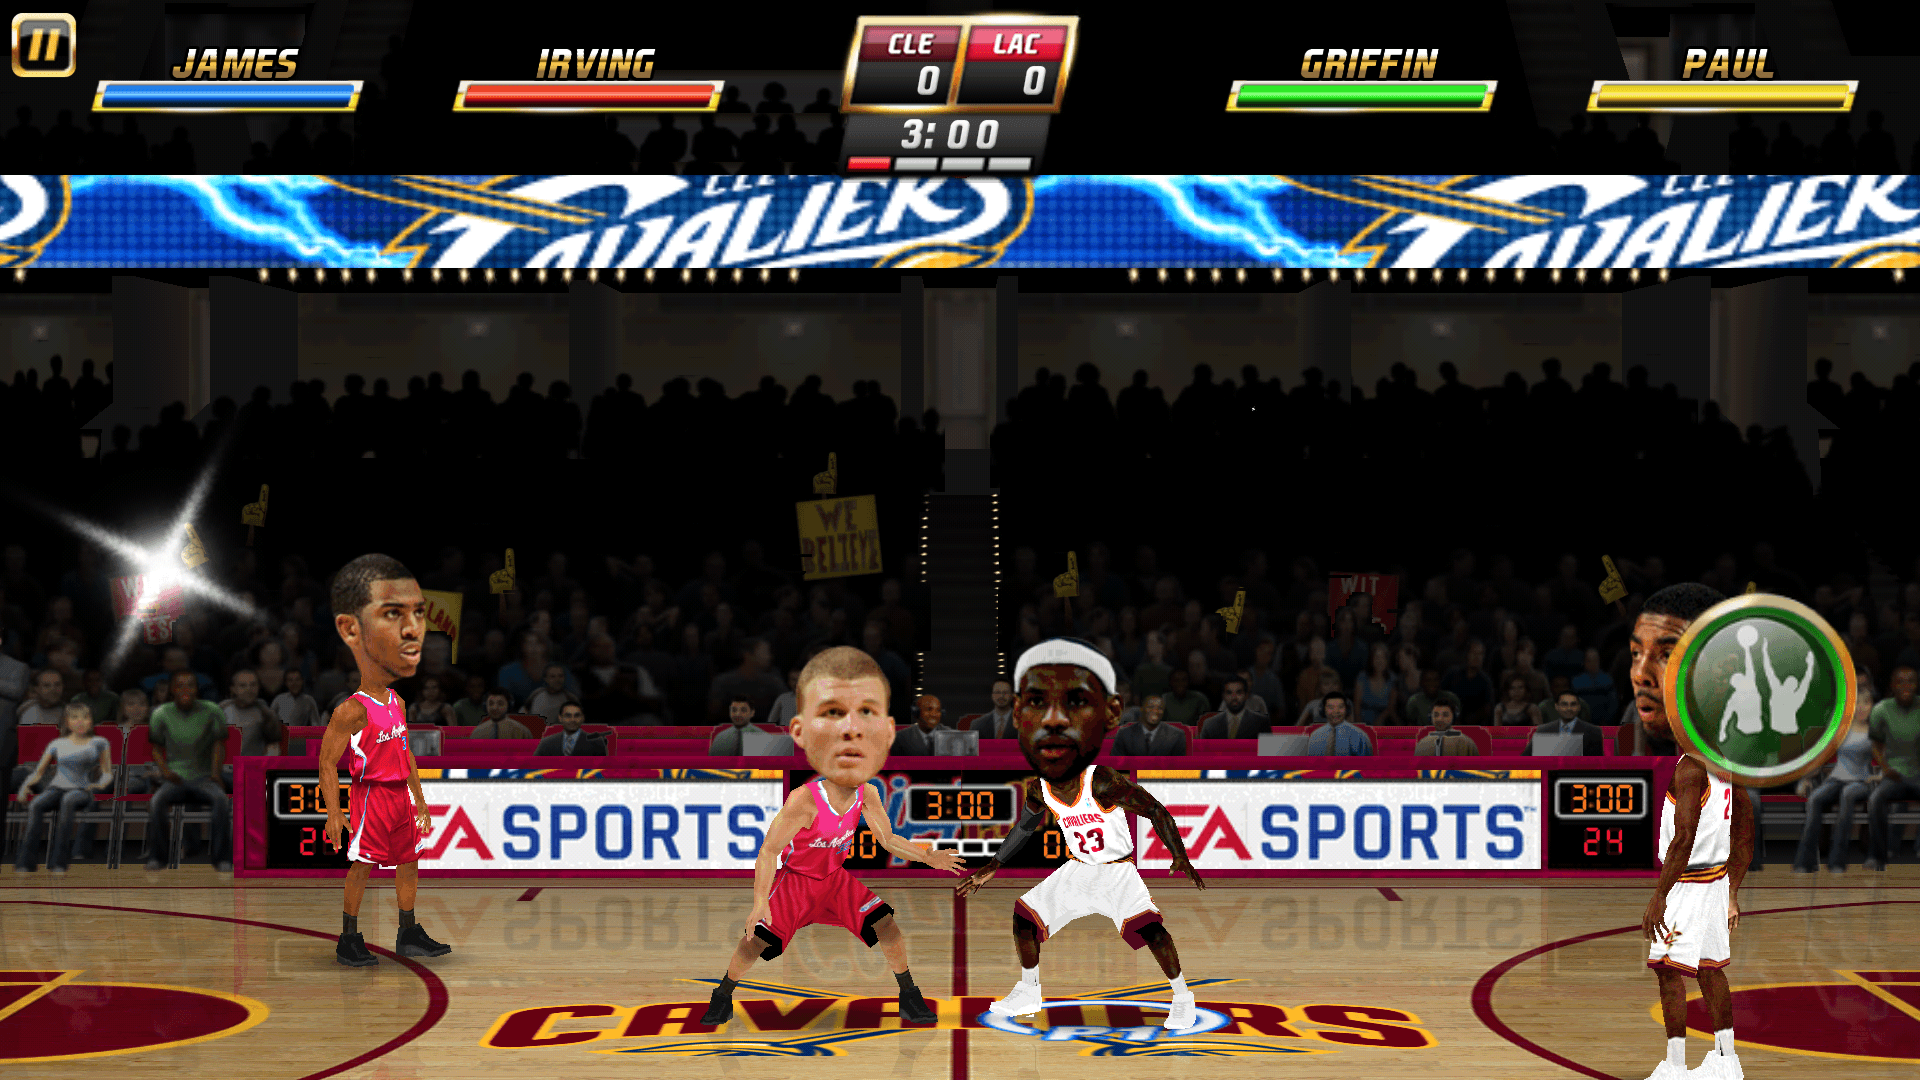 Download Nba Jam By Ea Sports On Pc With Bluestacks